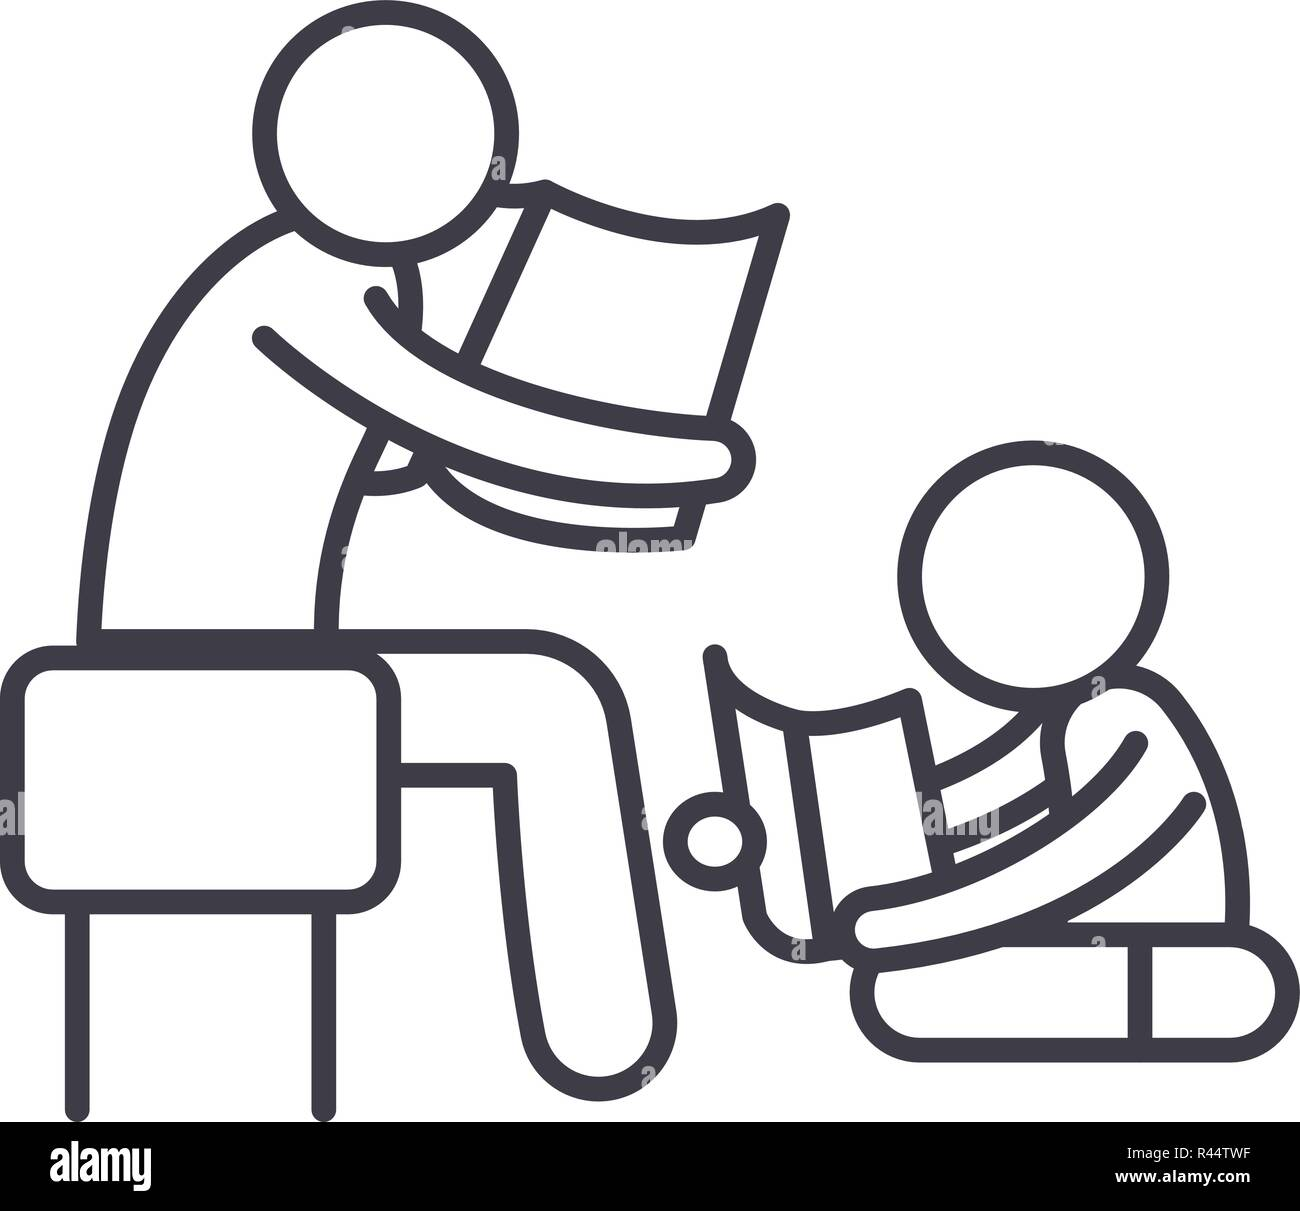 Parent reading a story to a child line icon concept. Parent reading a story to a child vector linear illustration, symbol, sign - Stock Image